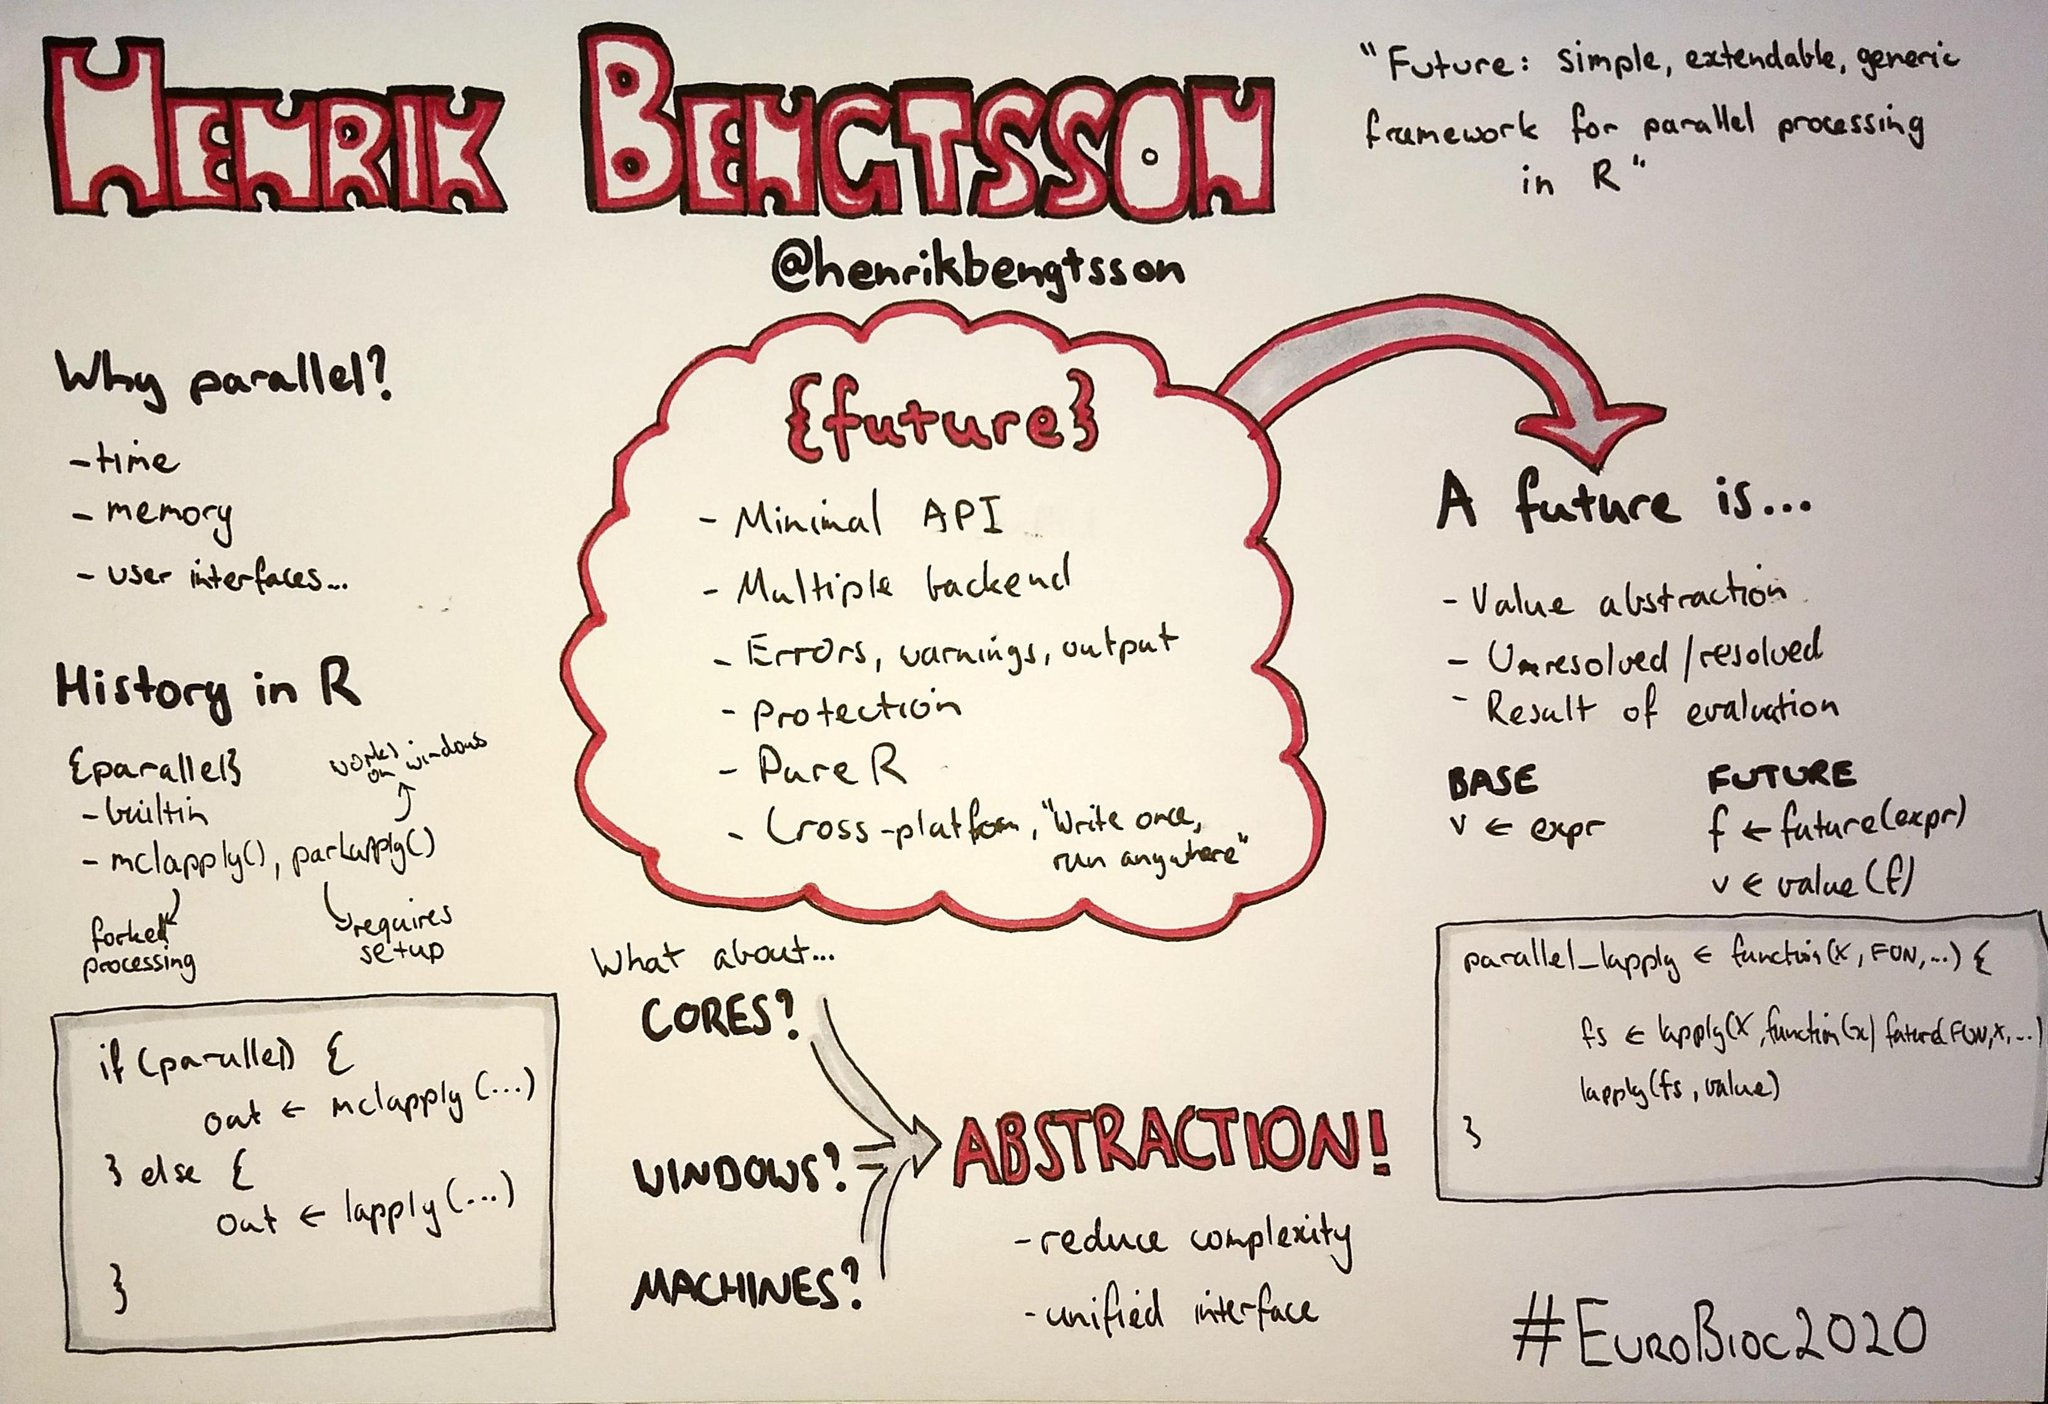 A hand-drawn summary of Henrik Bengtsson's future talk at the European Bioconductor Meeting 2020 in the form of a mindmap on a whileboard